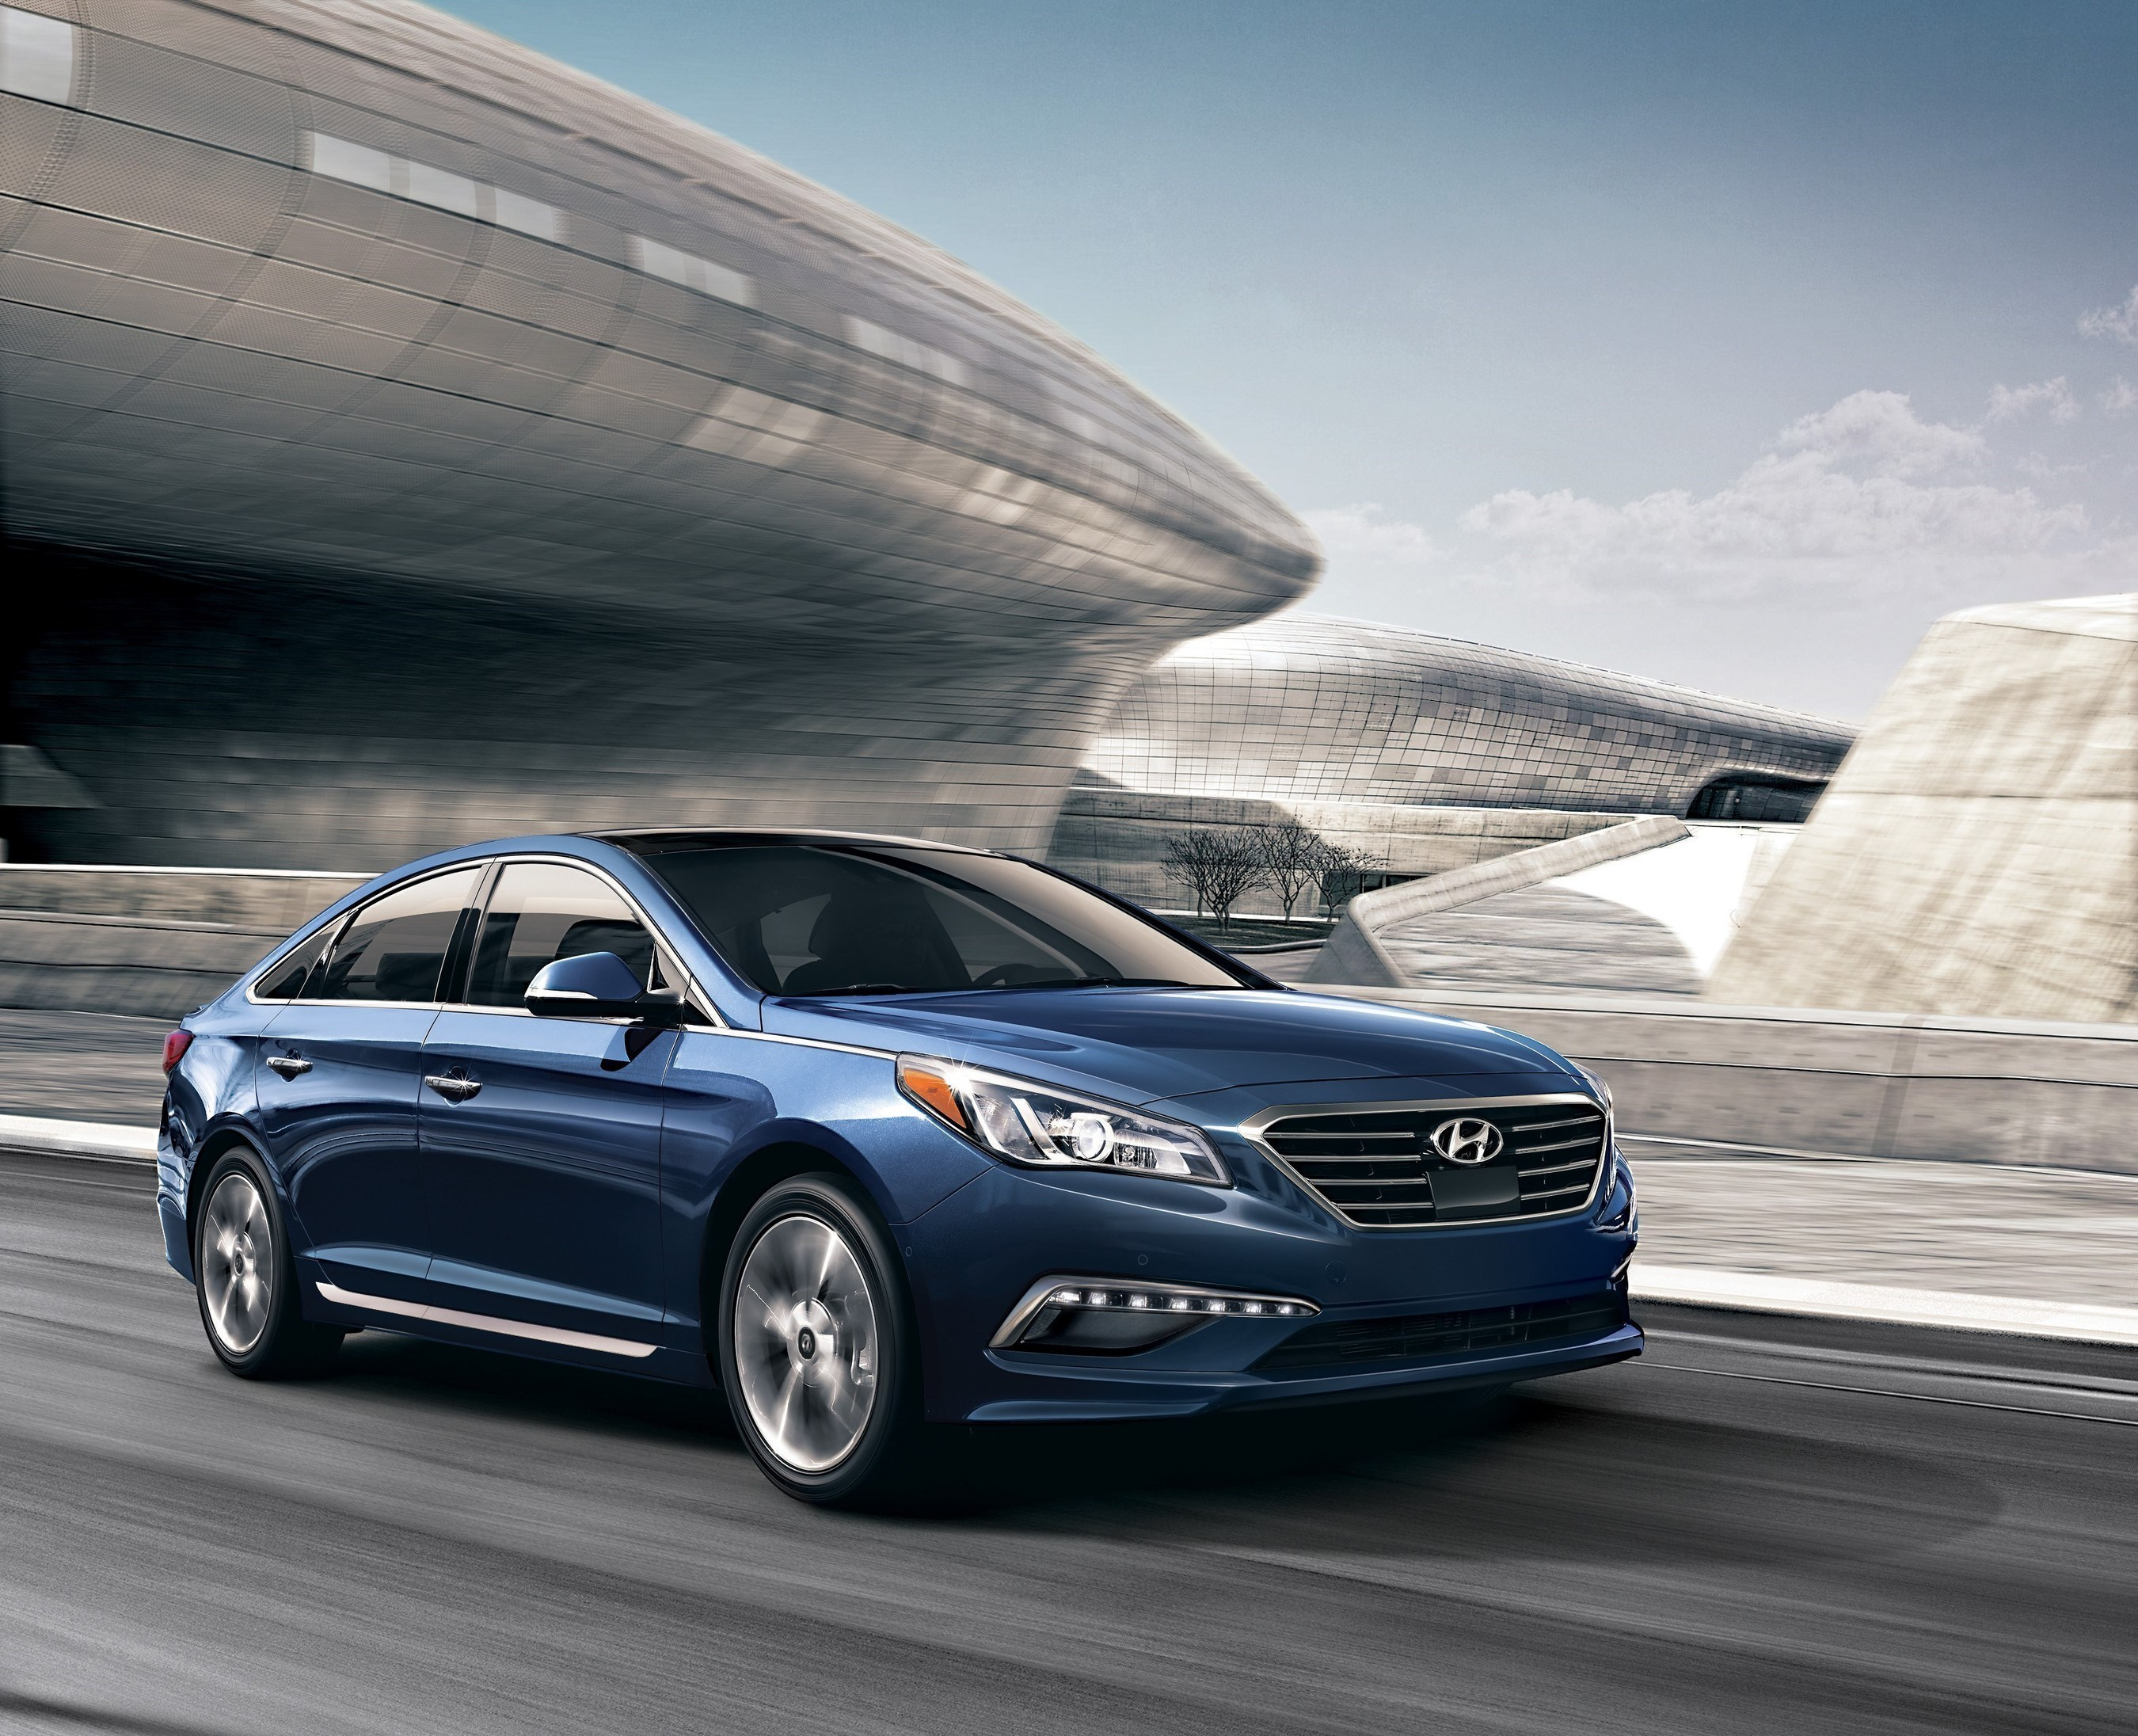 2015 Hyundai Sonata finishes in second place in its segment in the J.D. Power 2015 Automotive Performance, Execution and Layout (APEAL) Study released today.